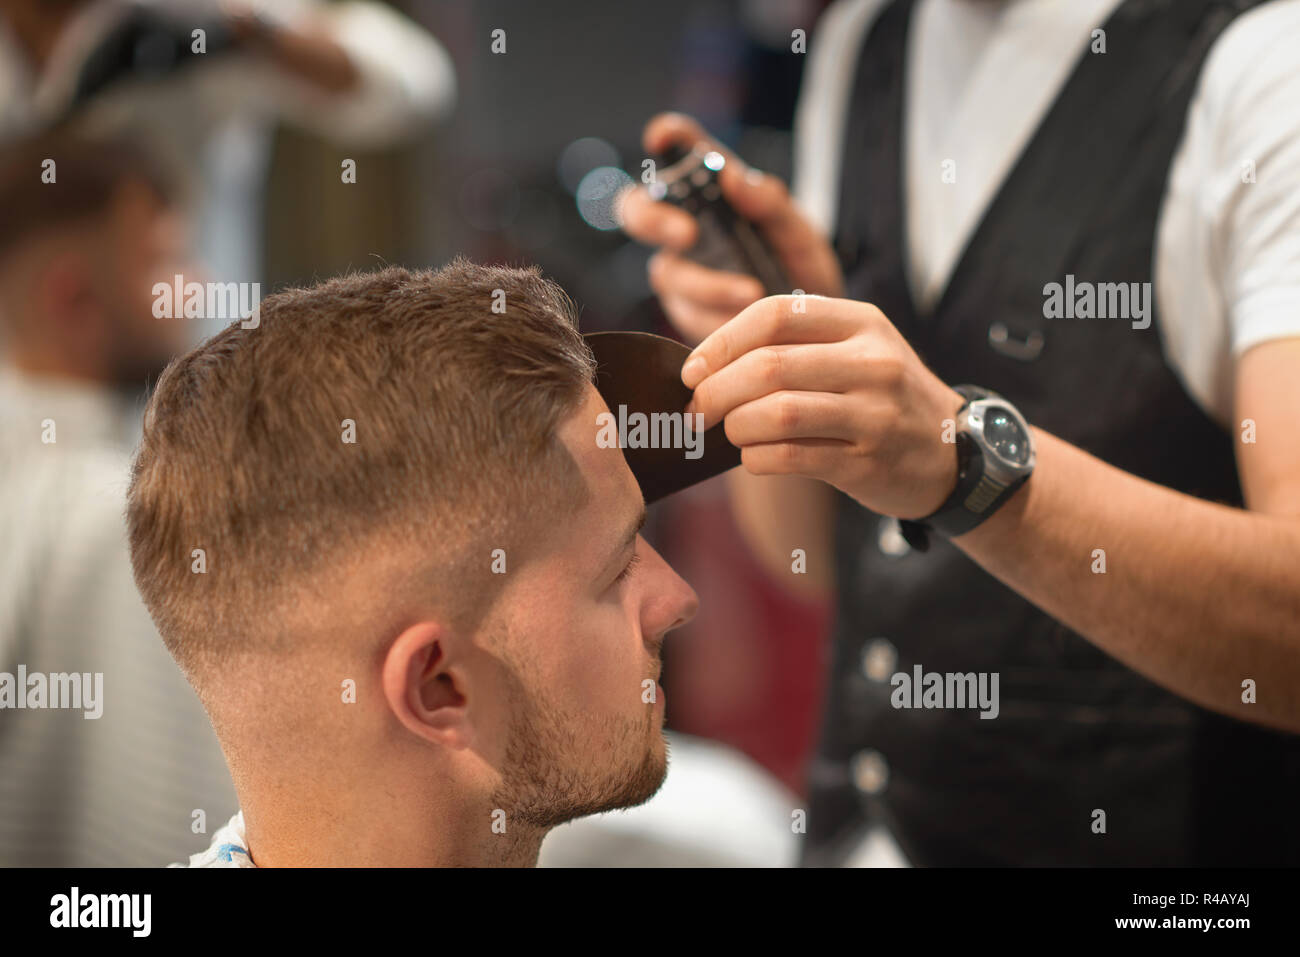 Selective focus of young man sitting in chair during procedure of hairstyling in barber shop. Qualified barber fixating hair of customer with hair spray. Concept of trendy hairdressing.  - Stock Image